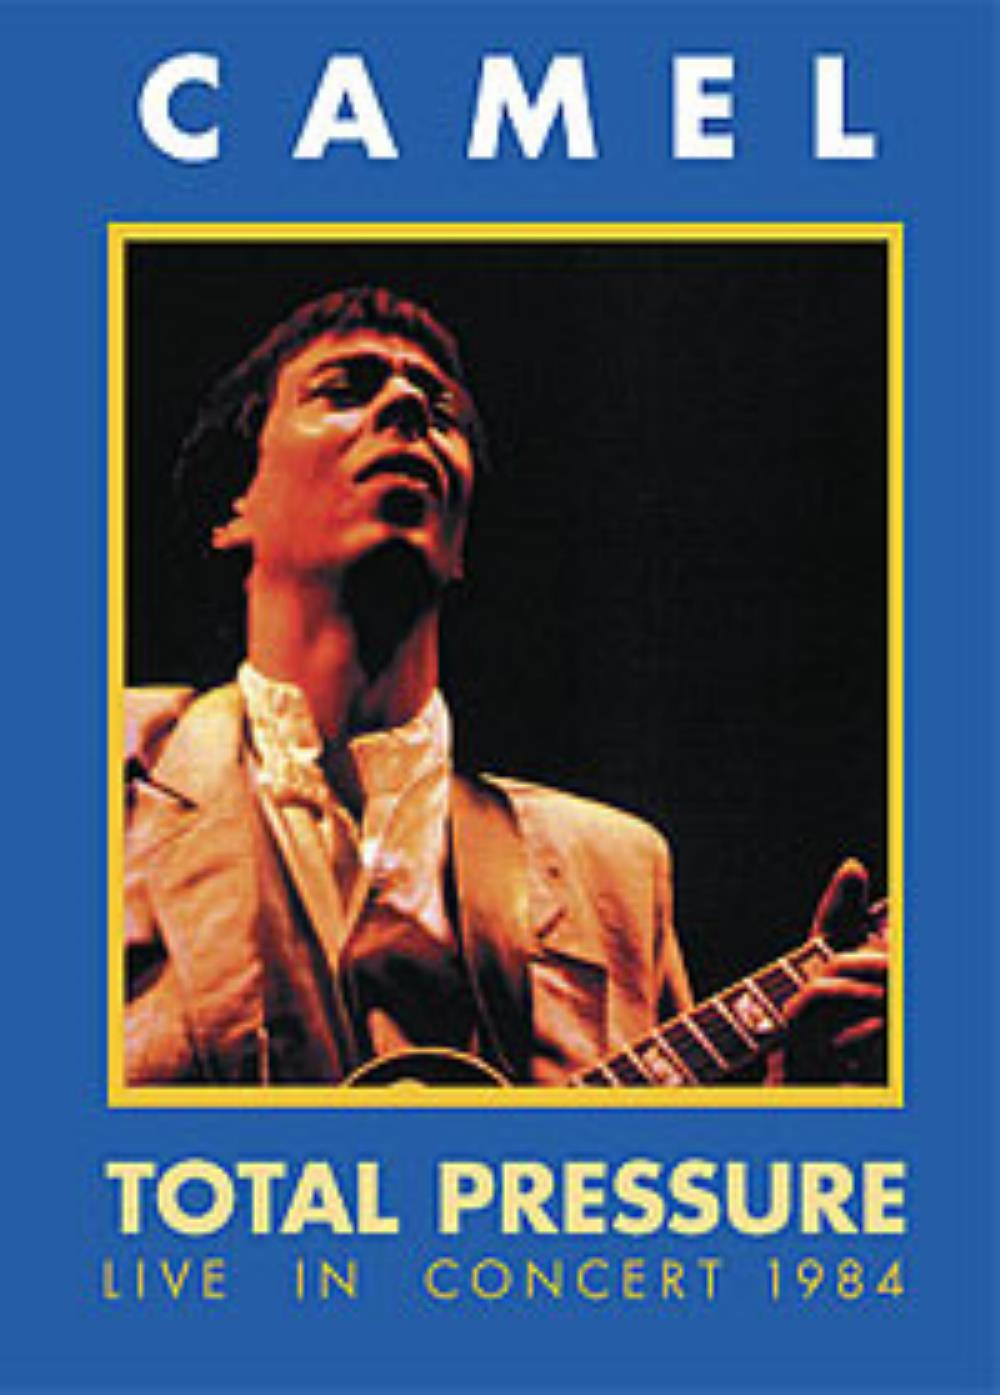 Camel - Total Pressure - Live In Concert 1984 CD (album) cover